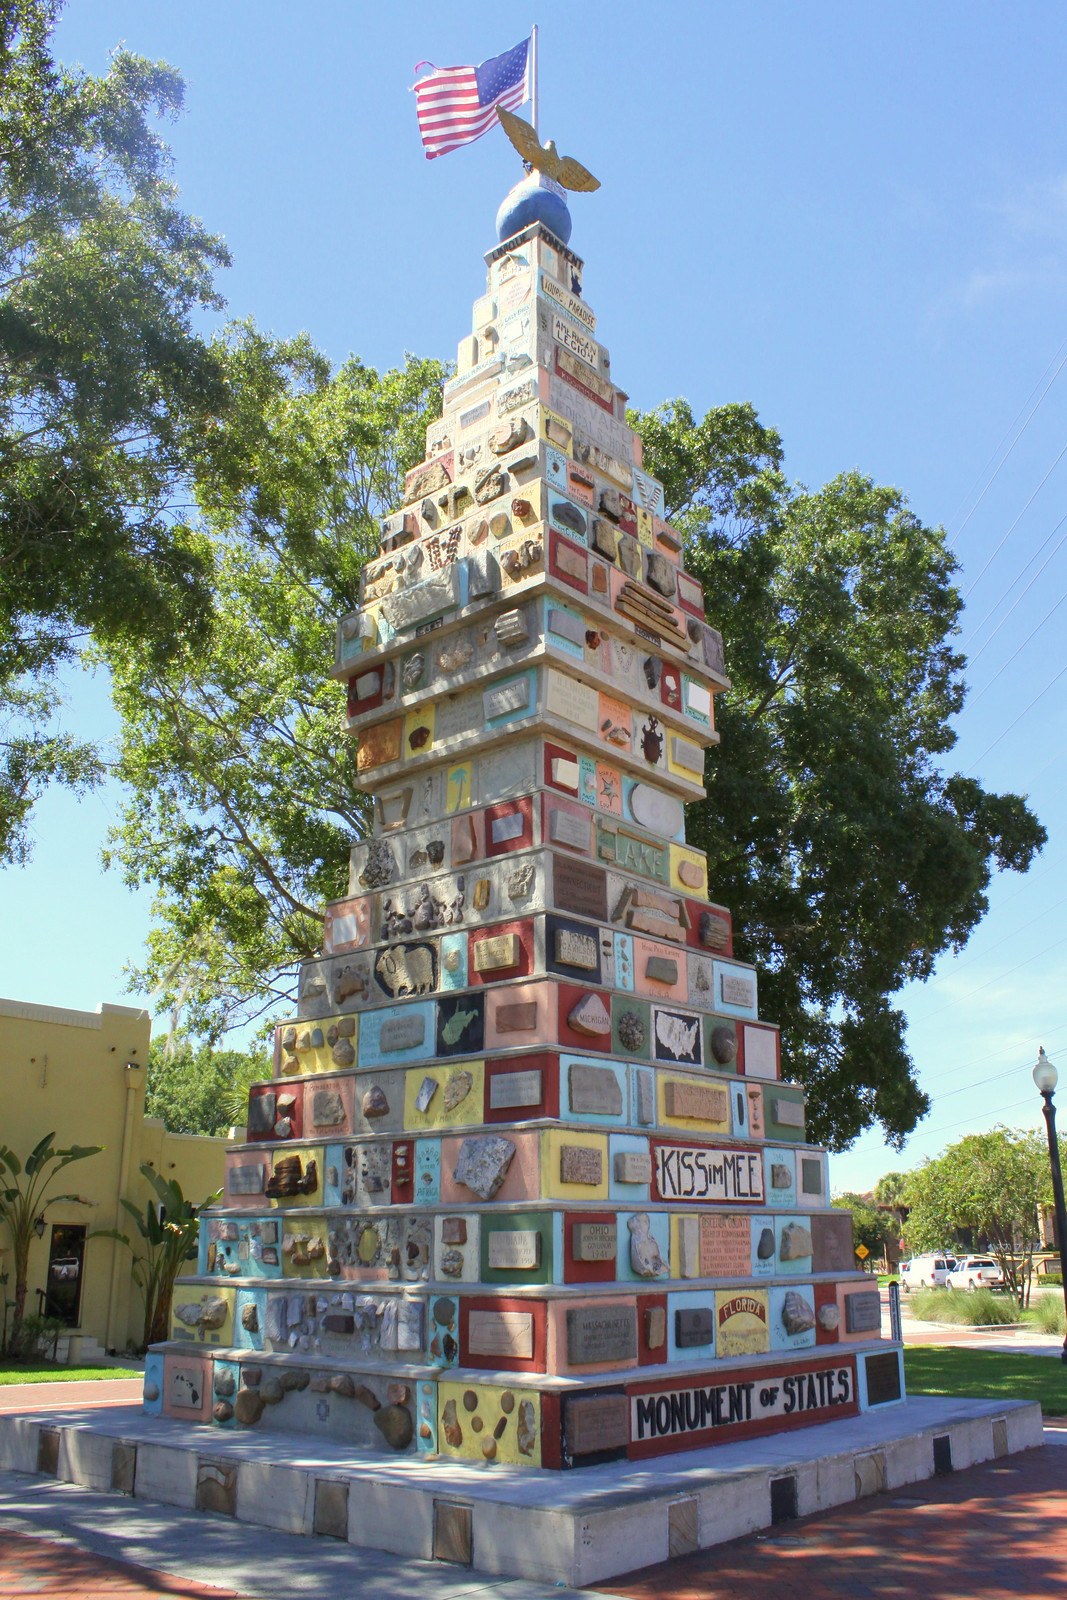 Monument of States - Kissimmee, FL